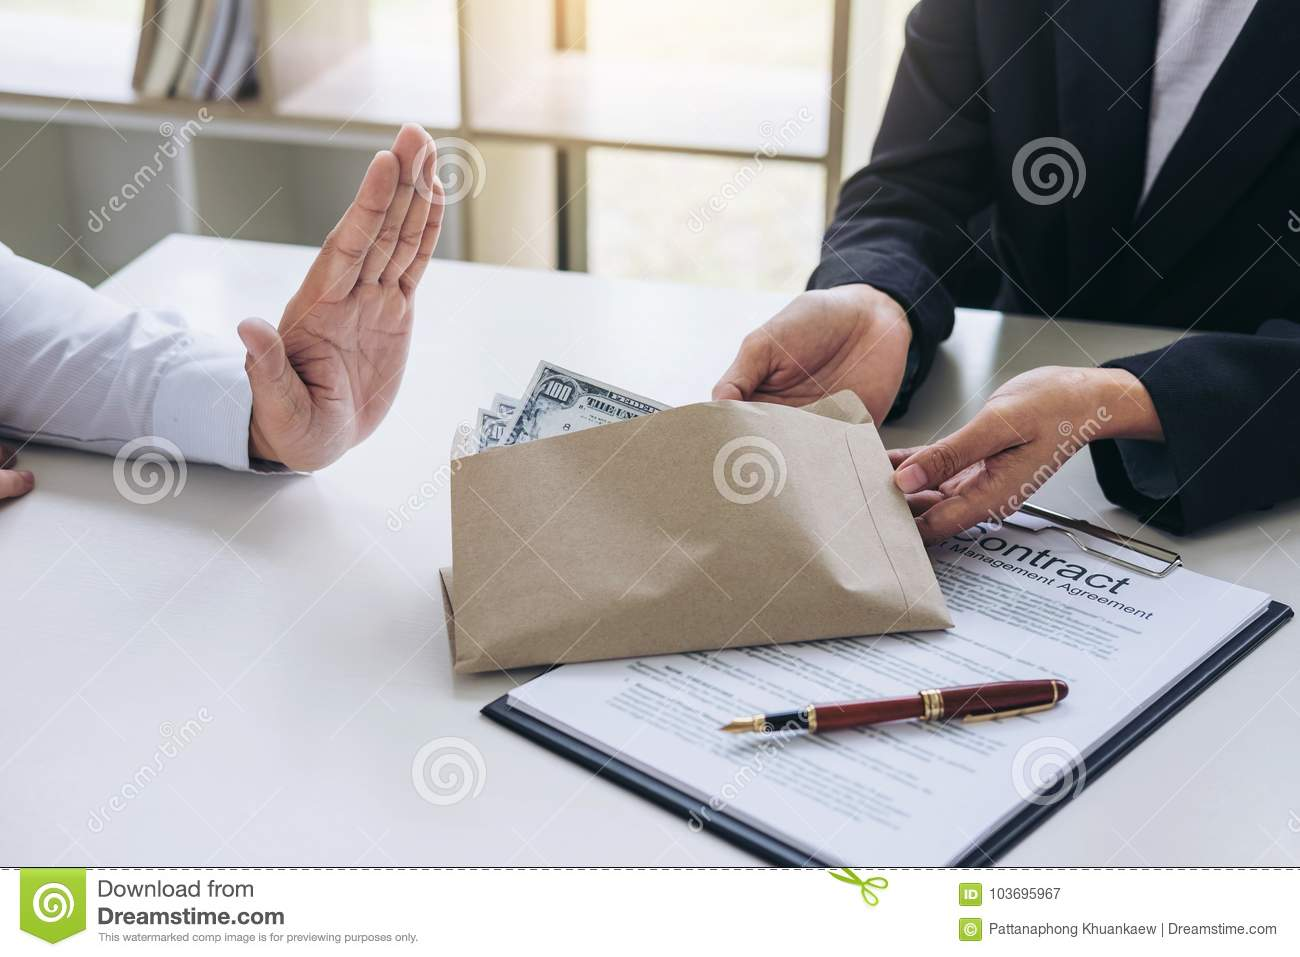 bribery disadvantage Through bribery and kickbacks some people skyrocket their promotion they move into positions they ought not to be because some people have been compromised that promotion aid some certain benefits to the people closer to them.